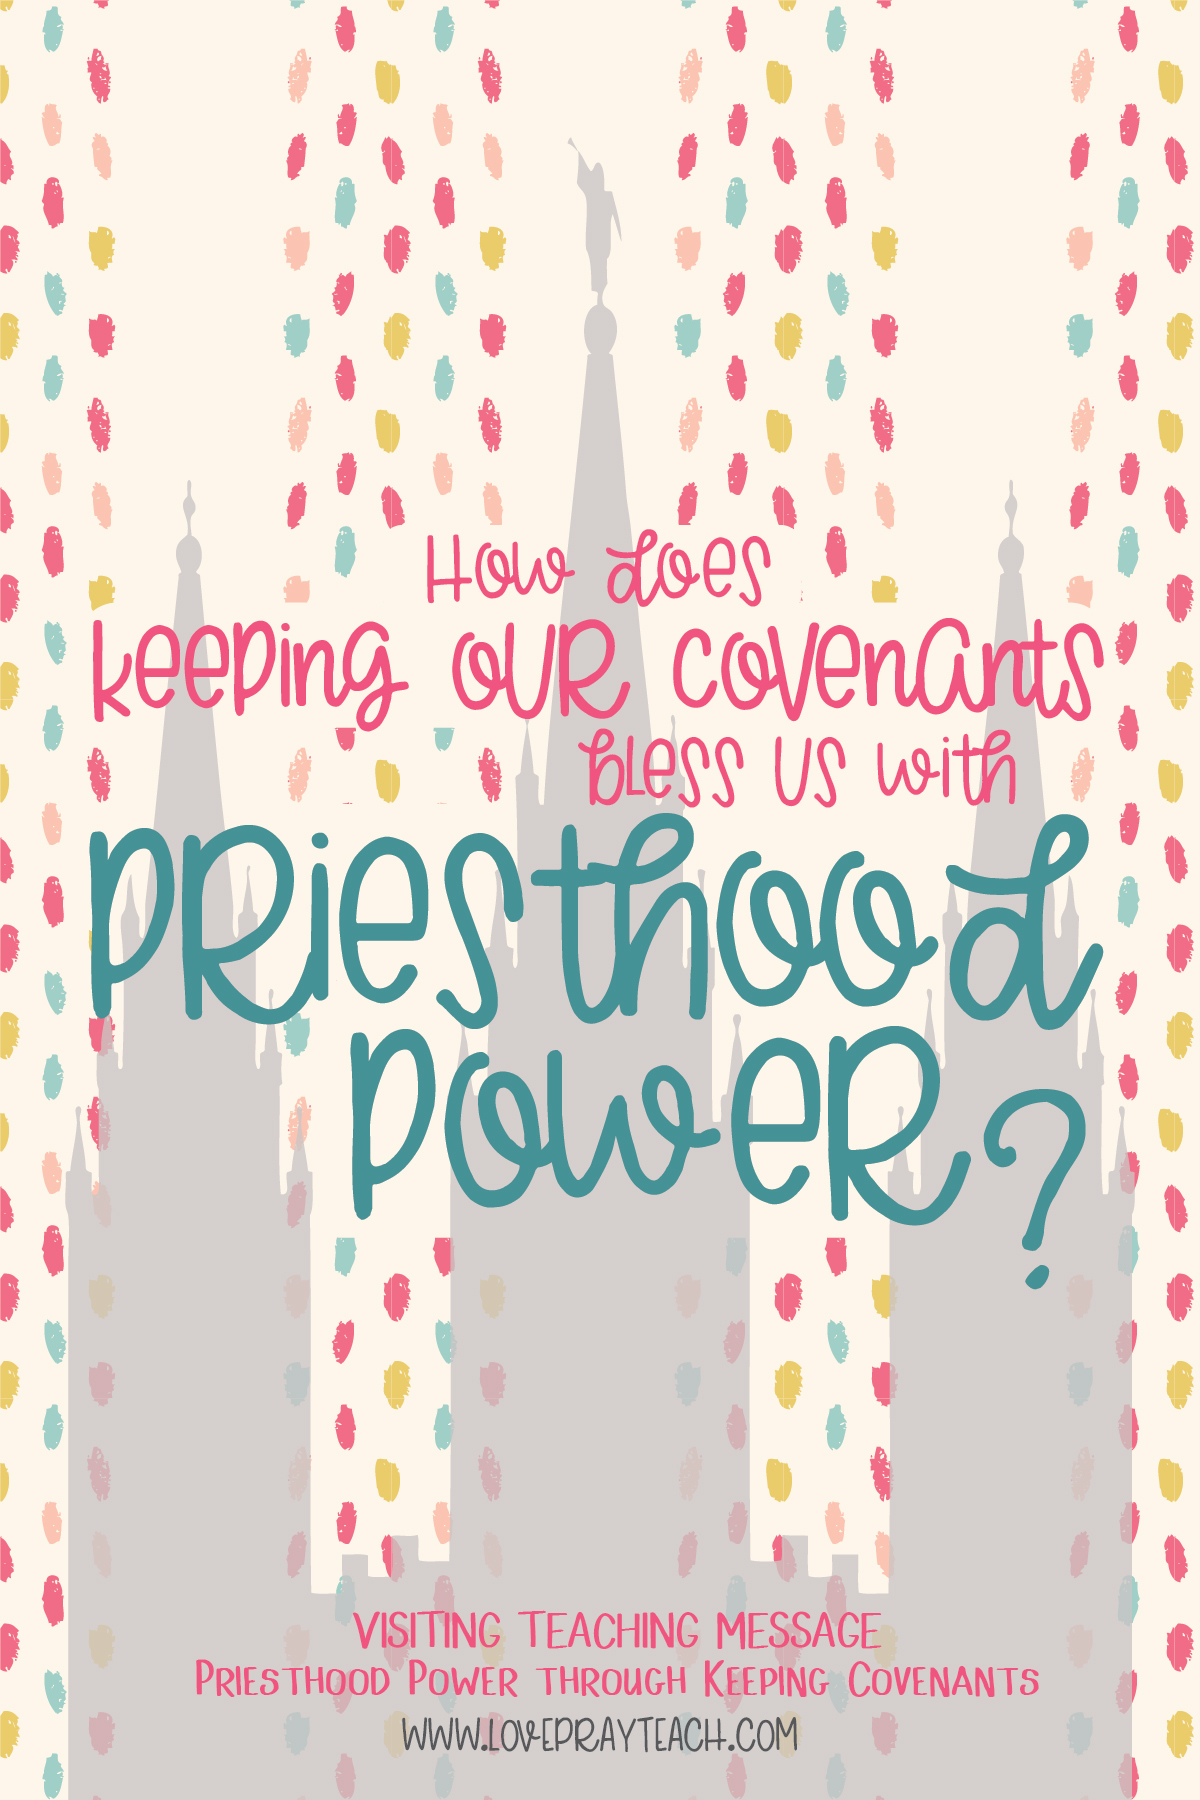 Free June 2017 Visiting Teaching Handout for Priesthood Power through Keeping Covenants